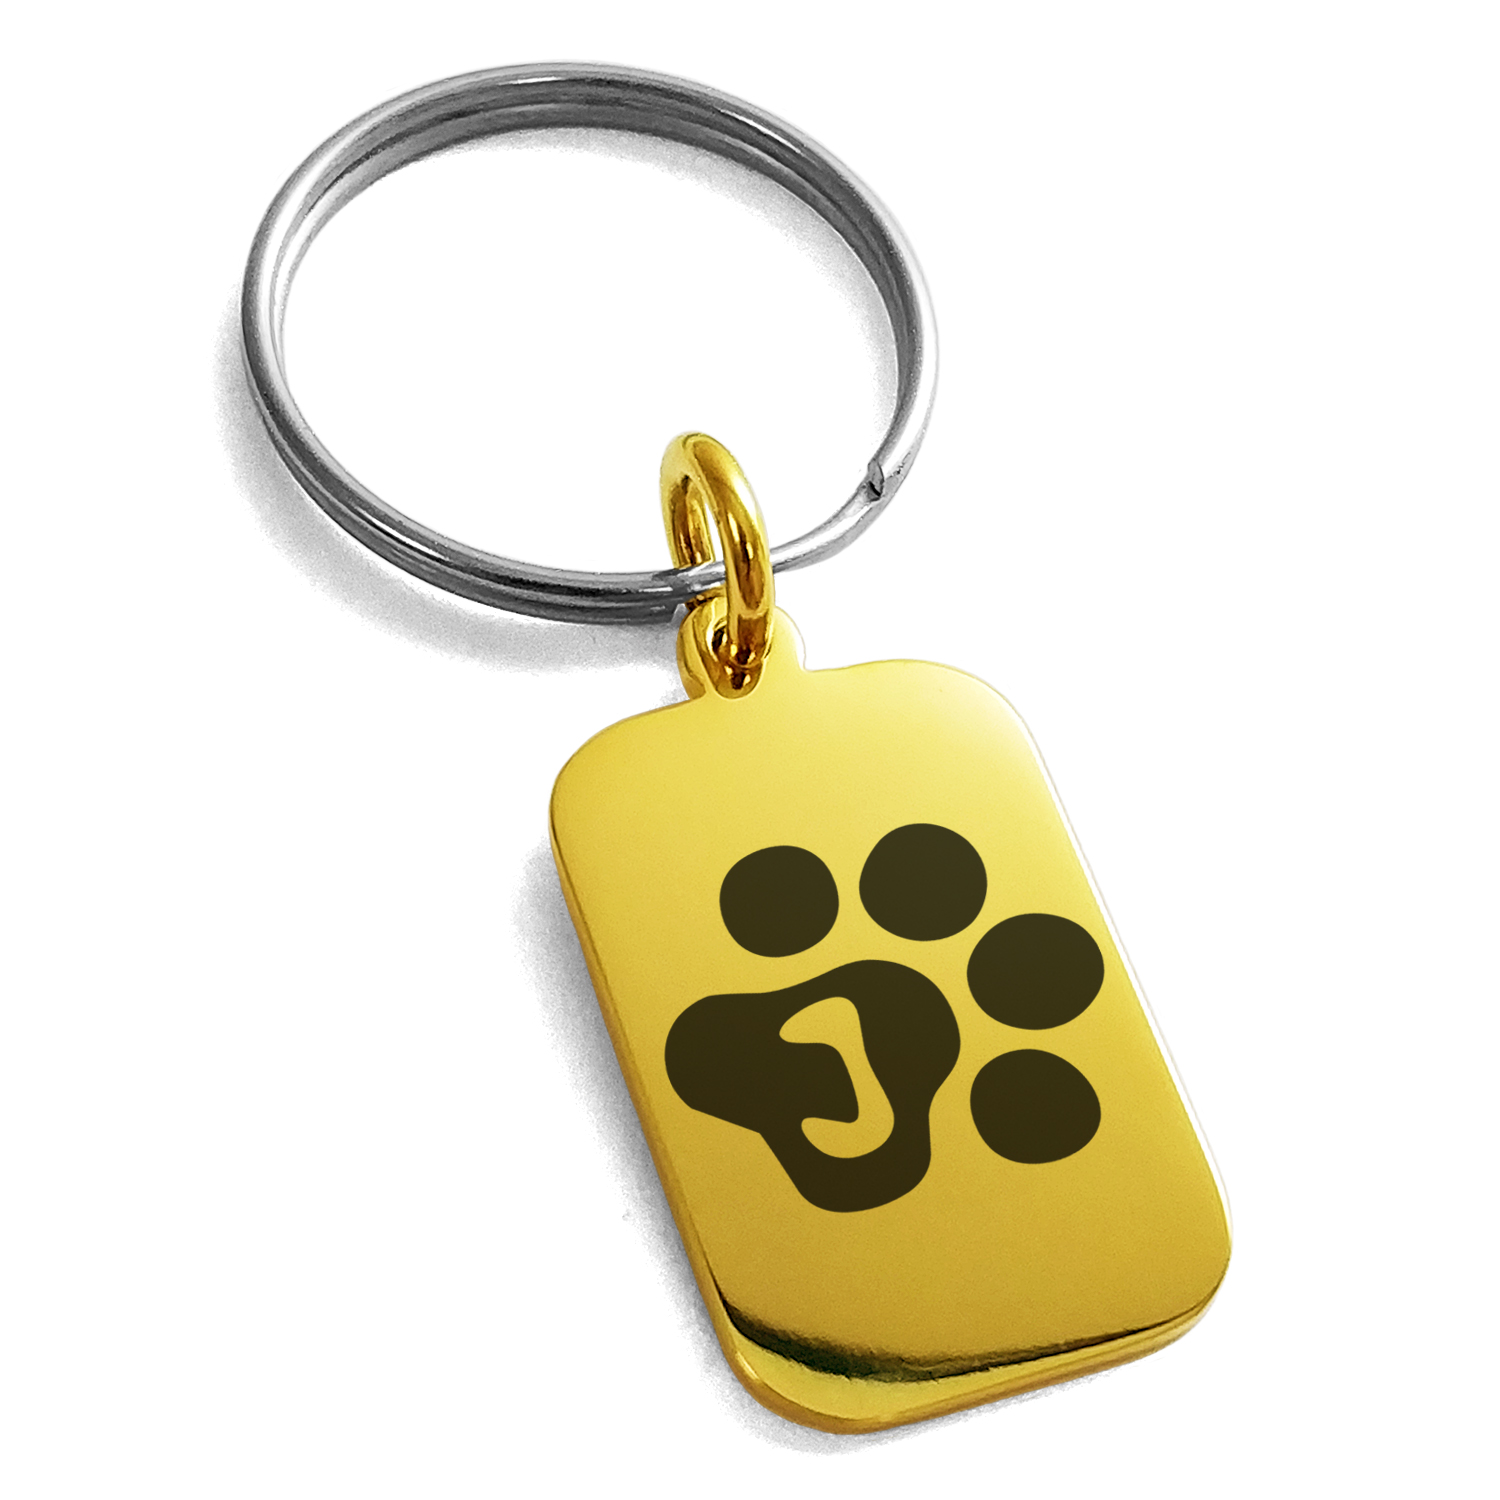 Stainless Steel Letter J Initial Cat Dog Paws Monogram Engraved Small Rectangle Dog Tag Charm Keychain Keyring